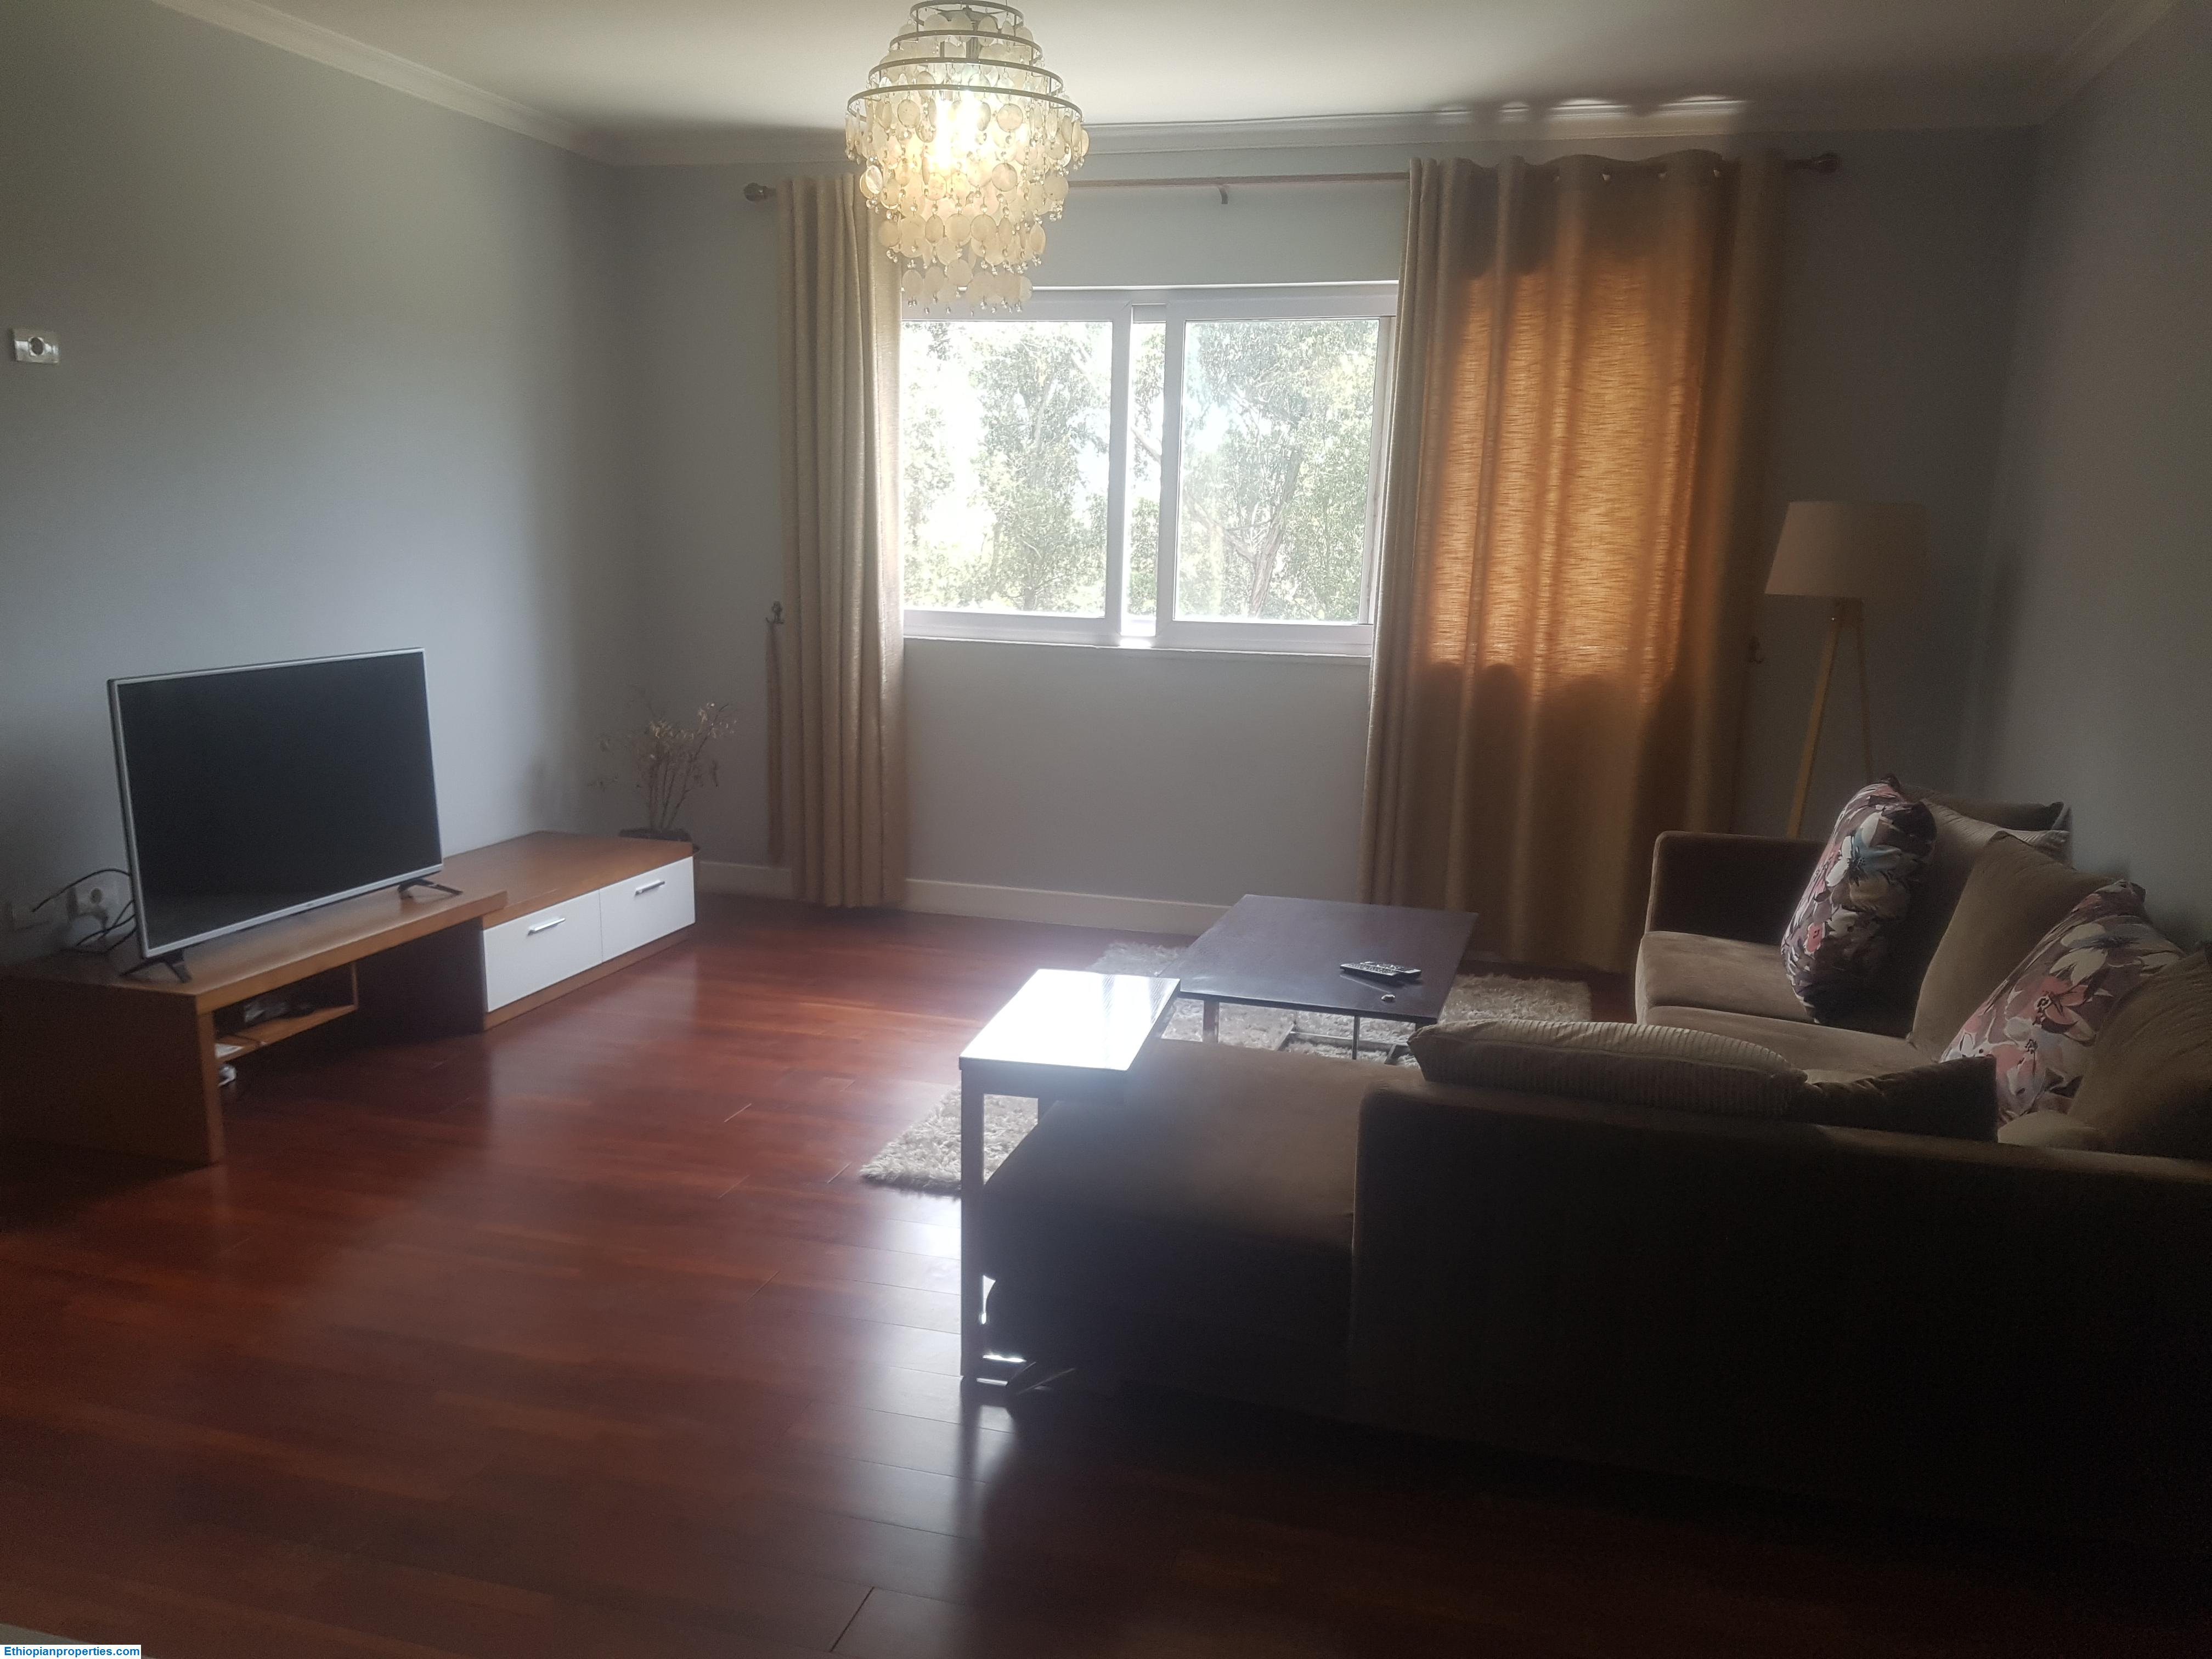 2 Bedroom Furnished Apartment For Rent In Bole